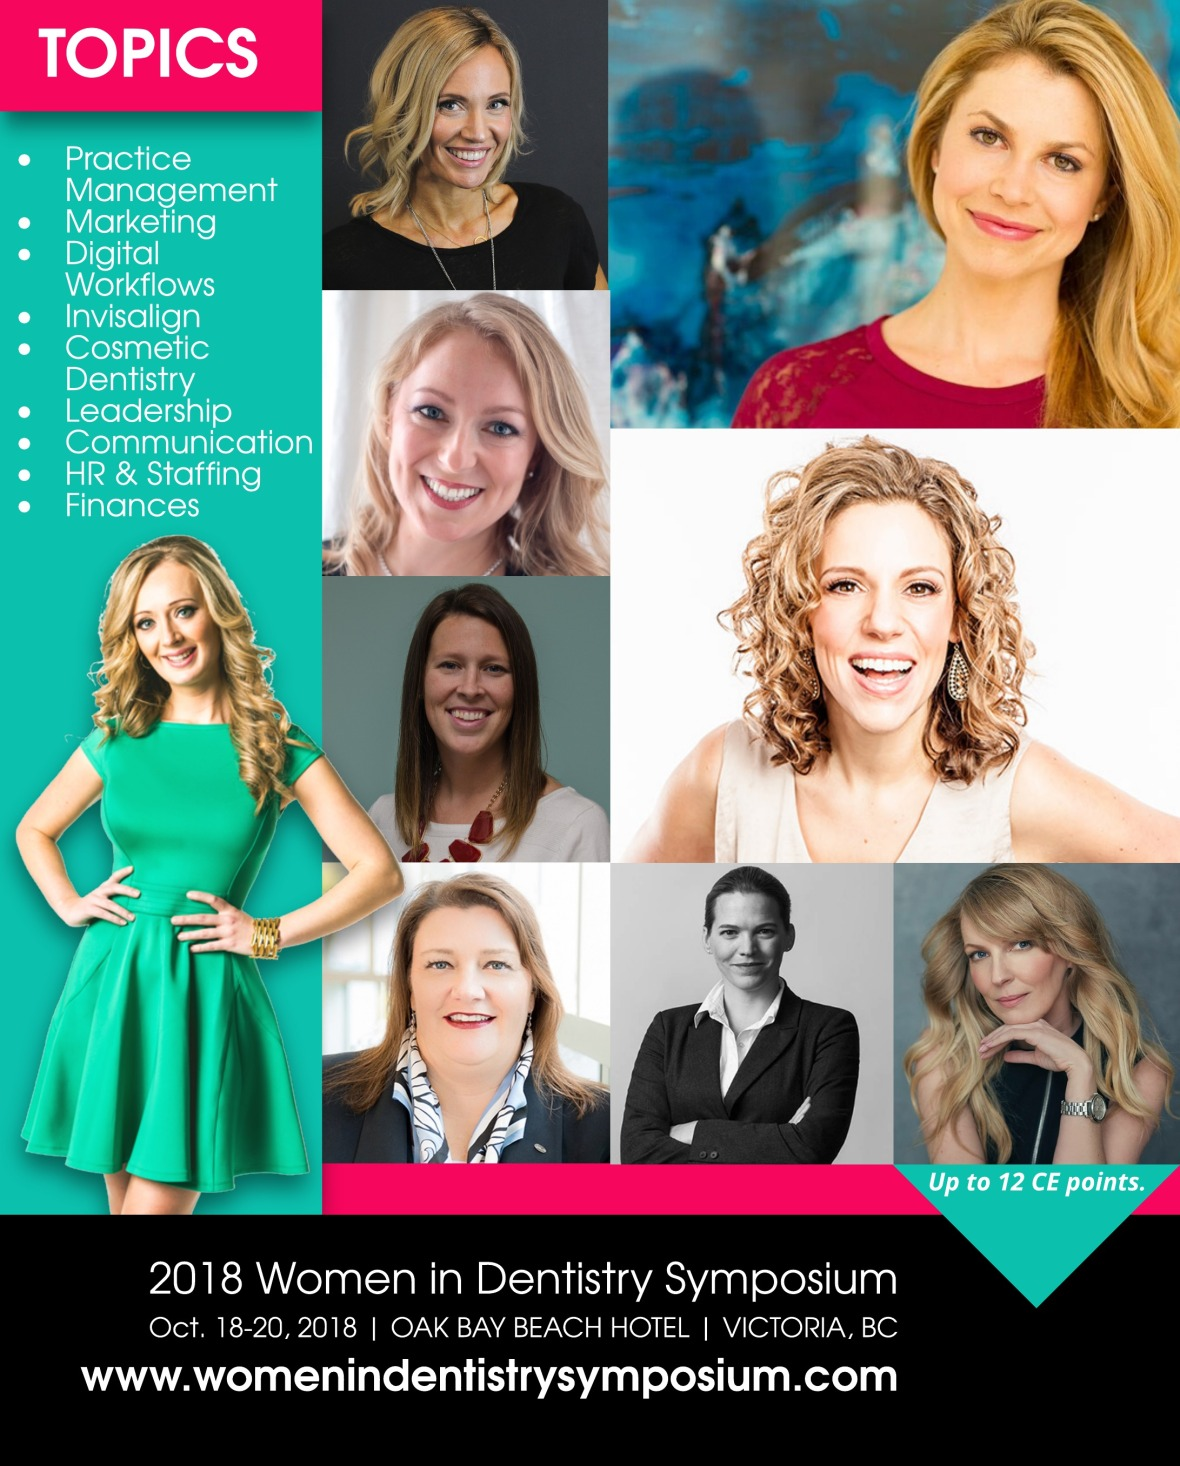 Women in Dentistry Symposium Promo